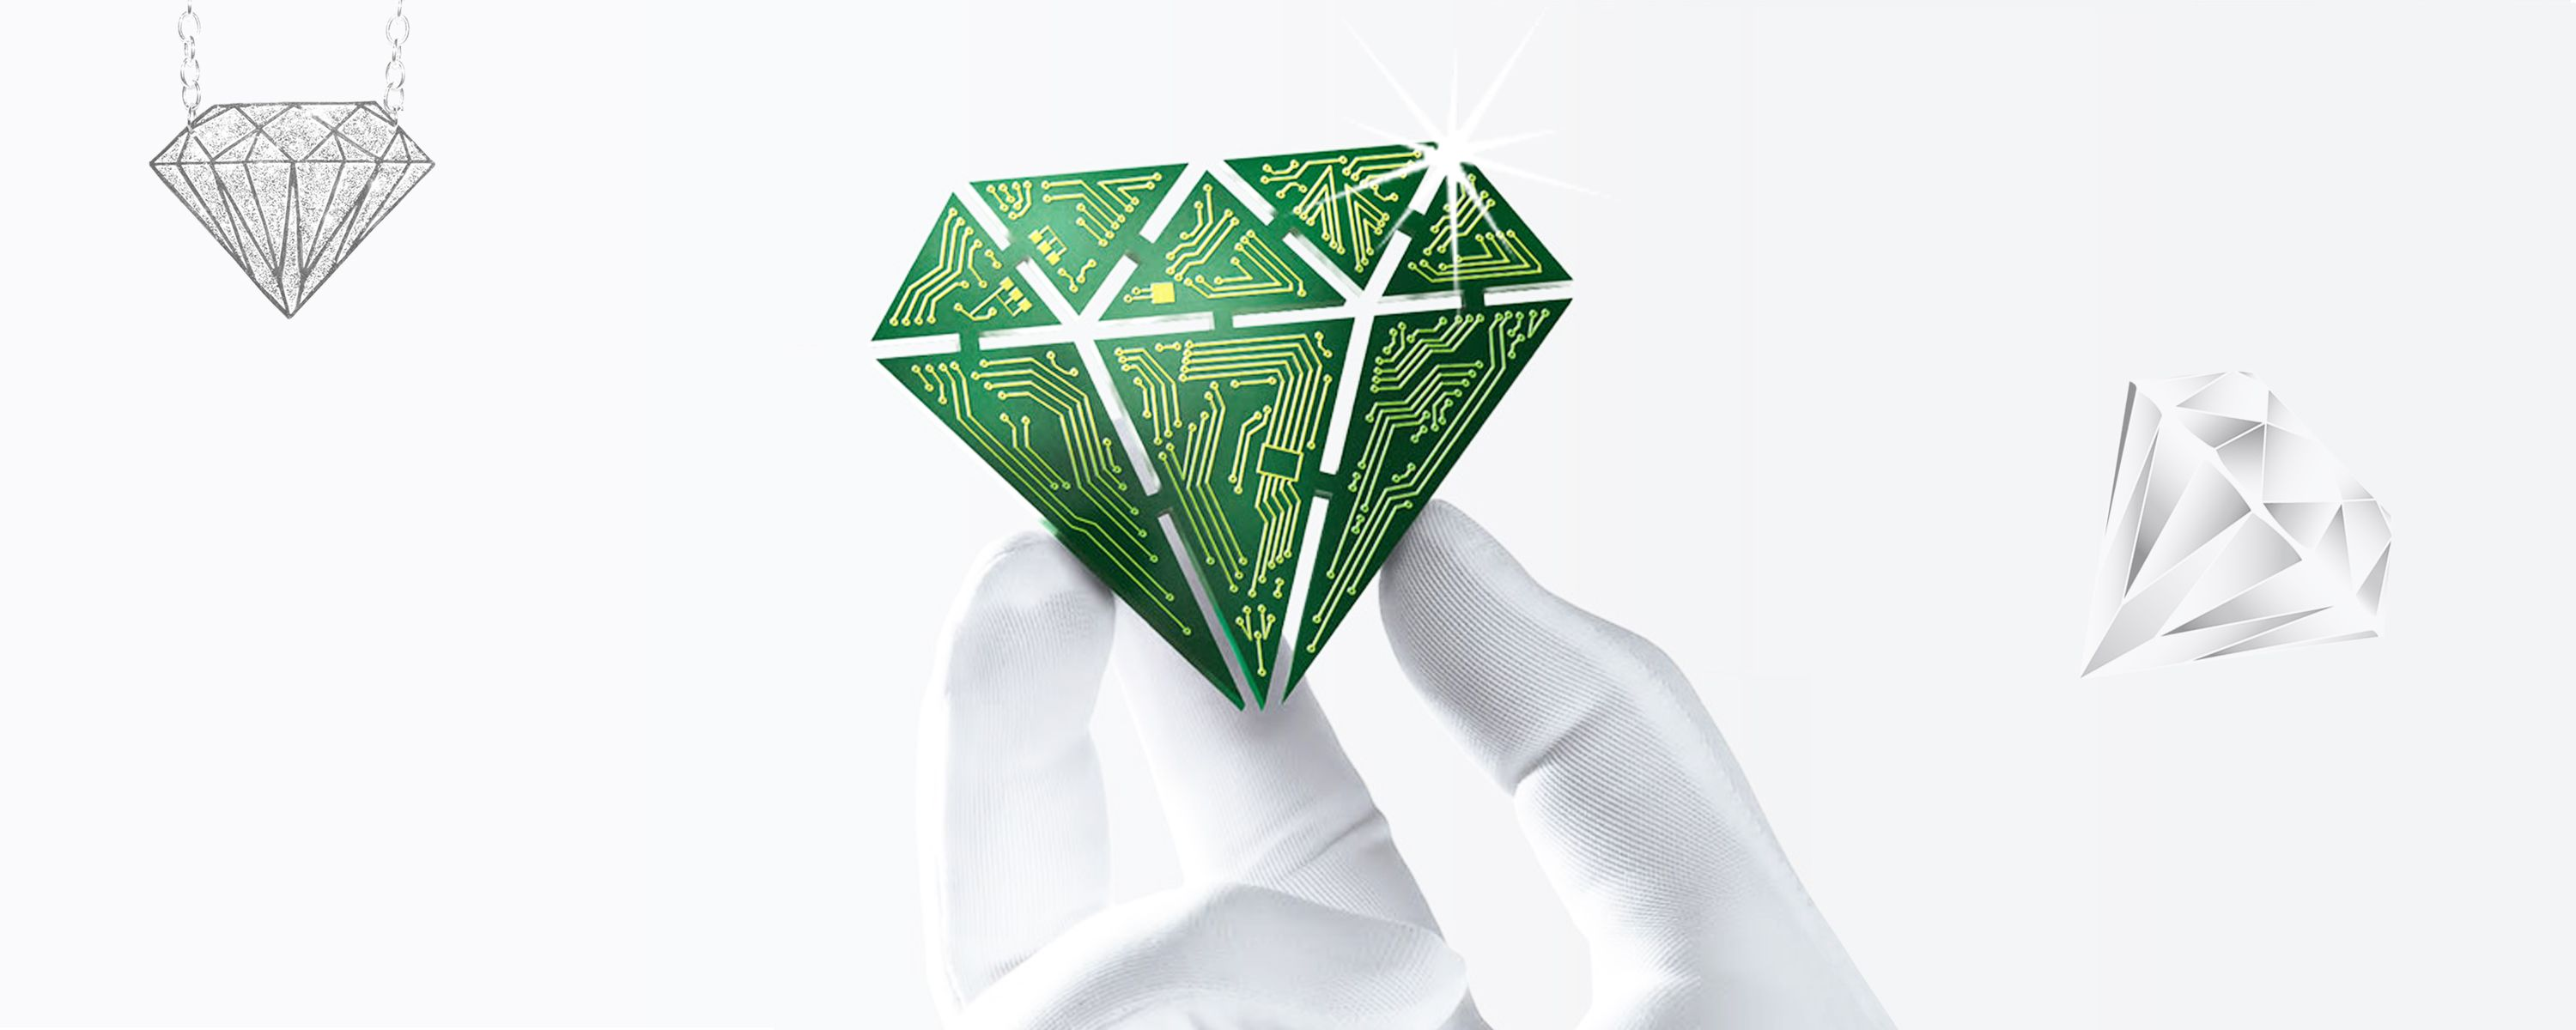 Diamond Pcb Design Printed Circuit Board Manufacturing Elecrow Boards Fabrication And Low Cost Services